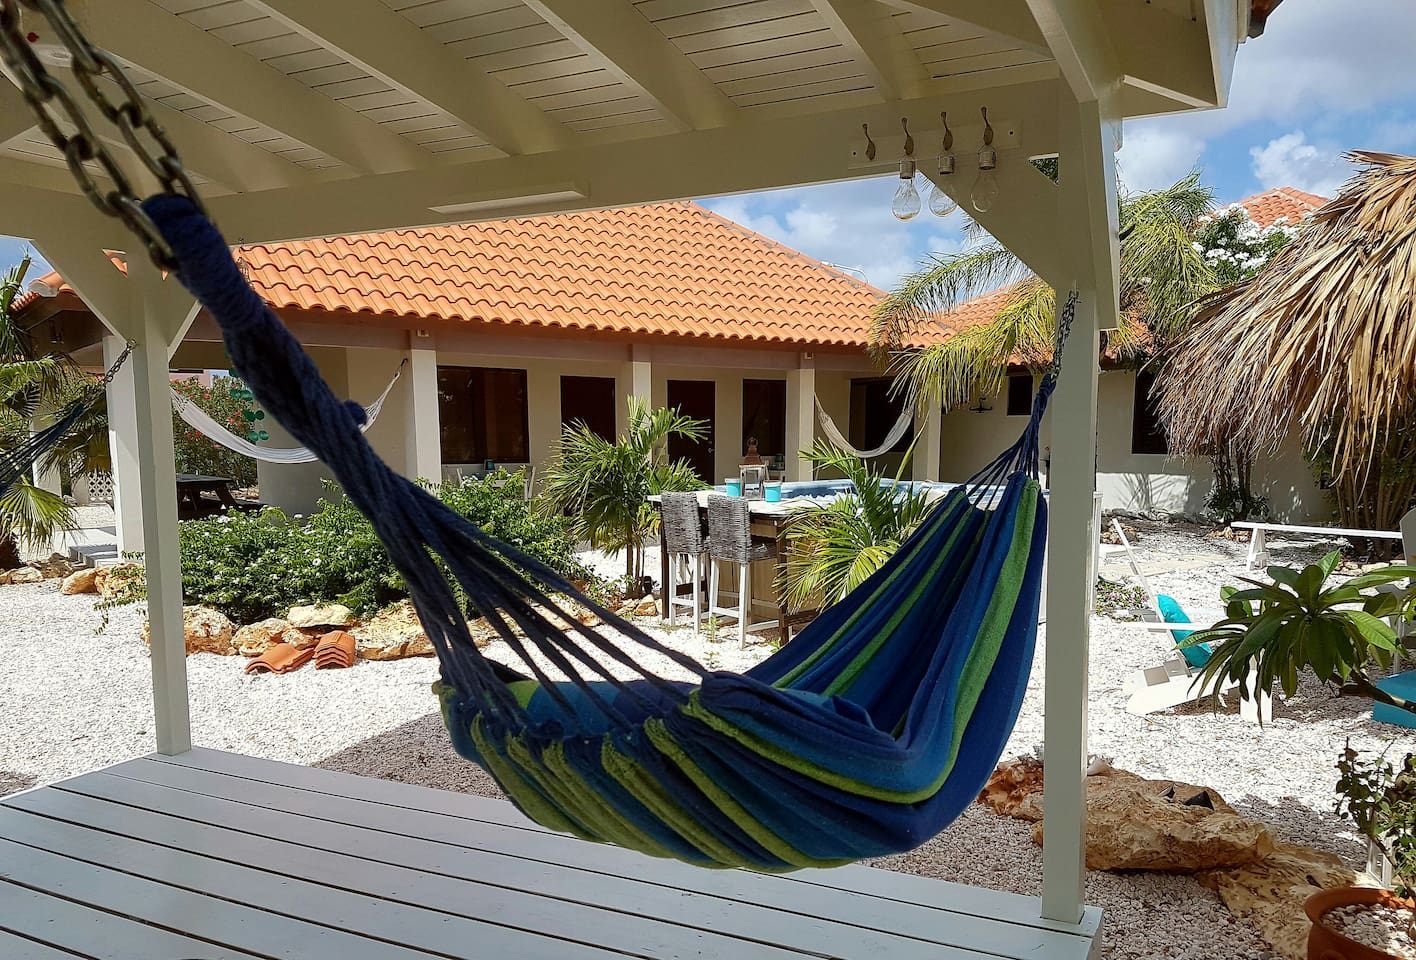 Relax in 1 of the 5 Hammocks and watch Humming Birds, Trupial, Parakeets and Iguanas!